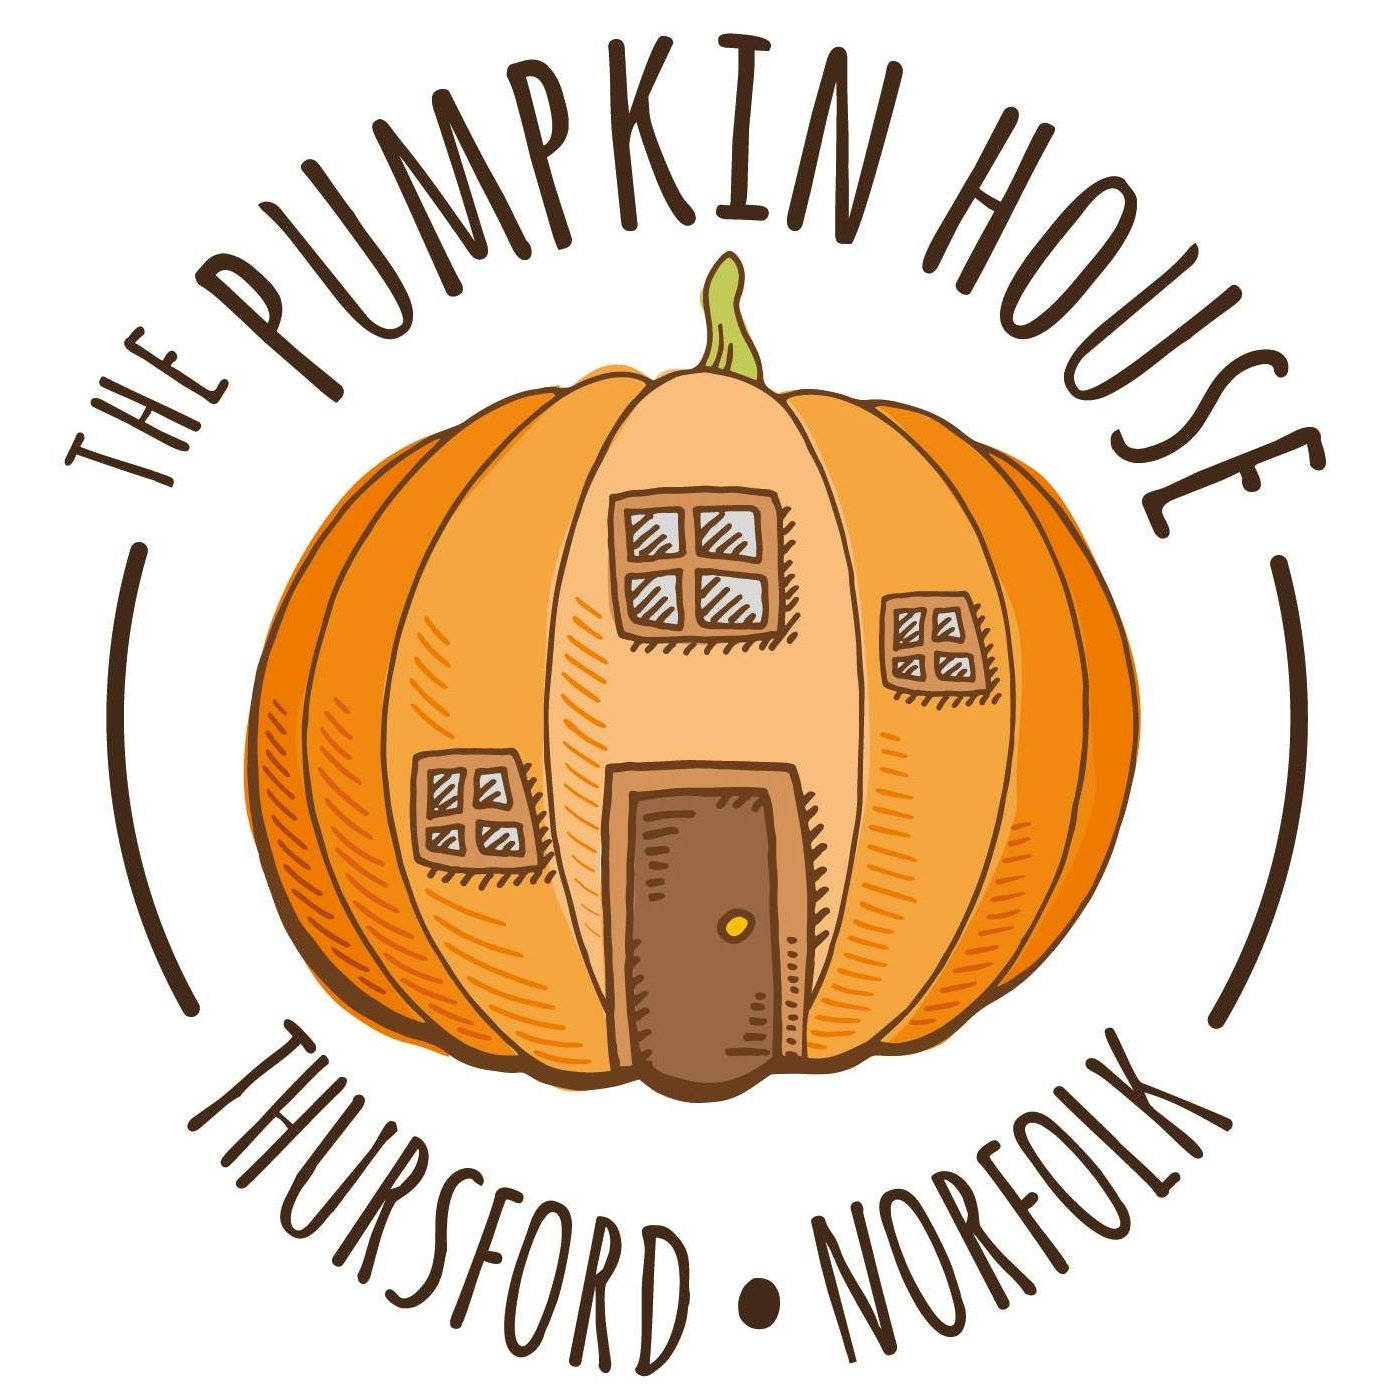 The Pumpkin House | Come and choose your pumpkin from the Pumpkin House shelves. Decorated with over 1,000 pumpkins you are sure to find your perfect Jack O Lantern. | Brookhill Farm, Fakenham Road, Thursford , Norfolk, NR21 0BD